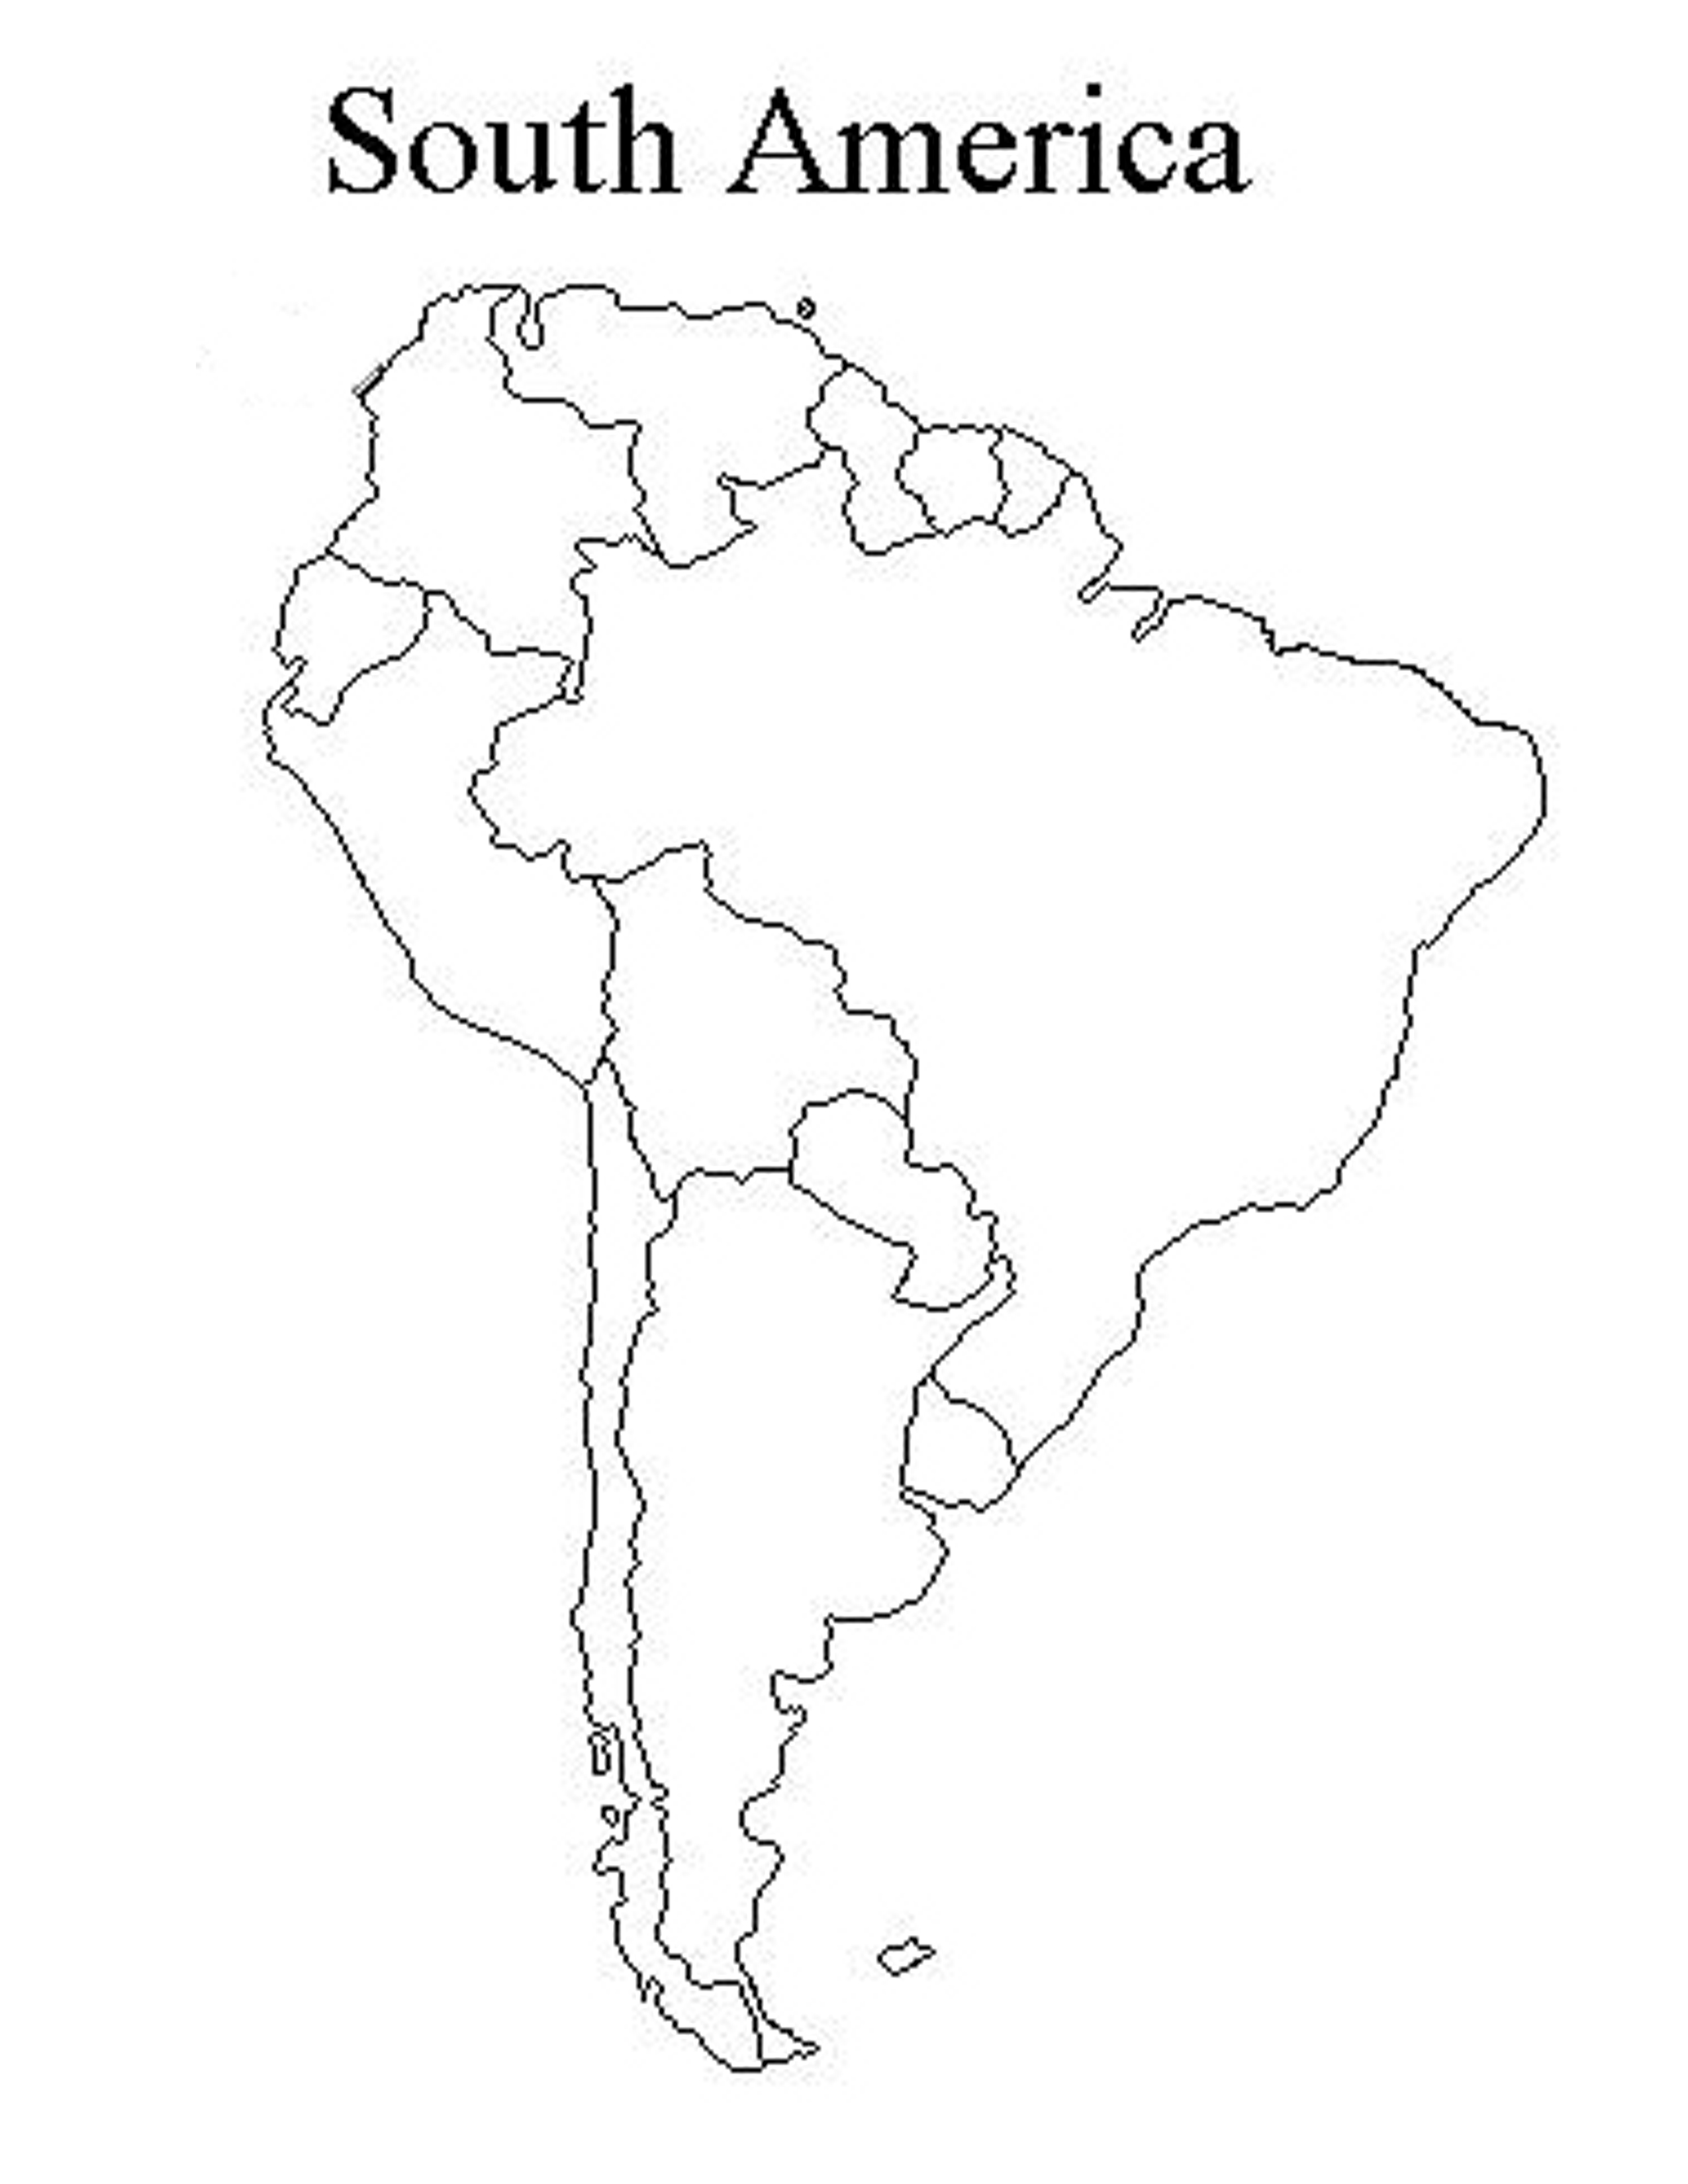 Blank South America Map Test Psdhook